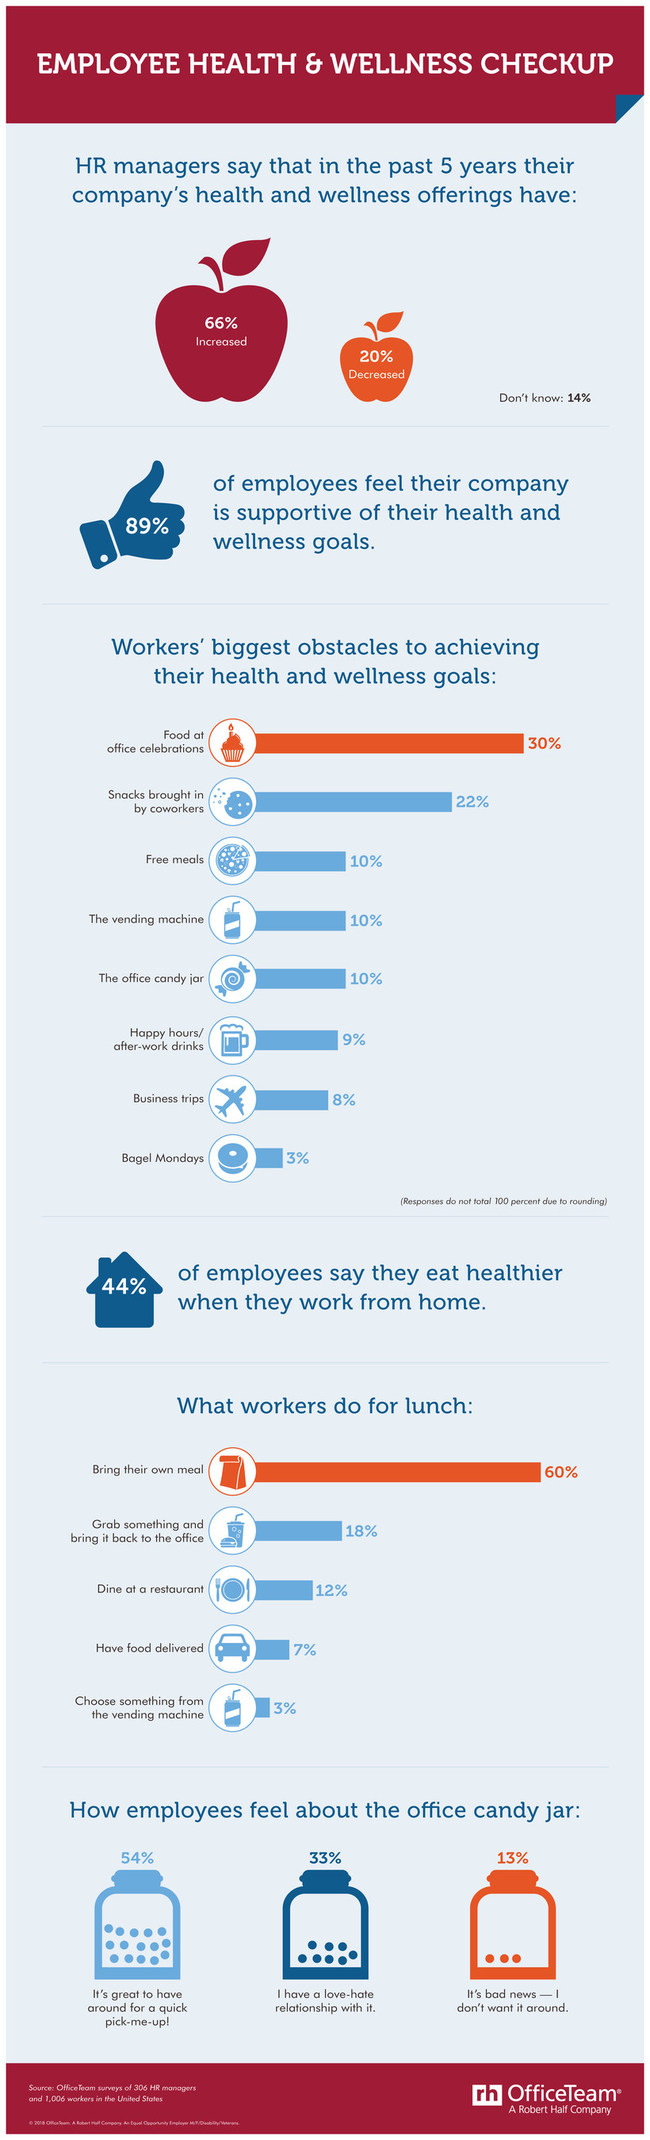 According to a new OfficeTeam survey, 66% of companies have increased health and wellness offerings in the past 5 years. And 89% of workers said their employer is supportive of their wellness goals.